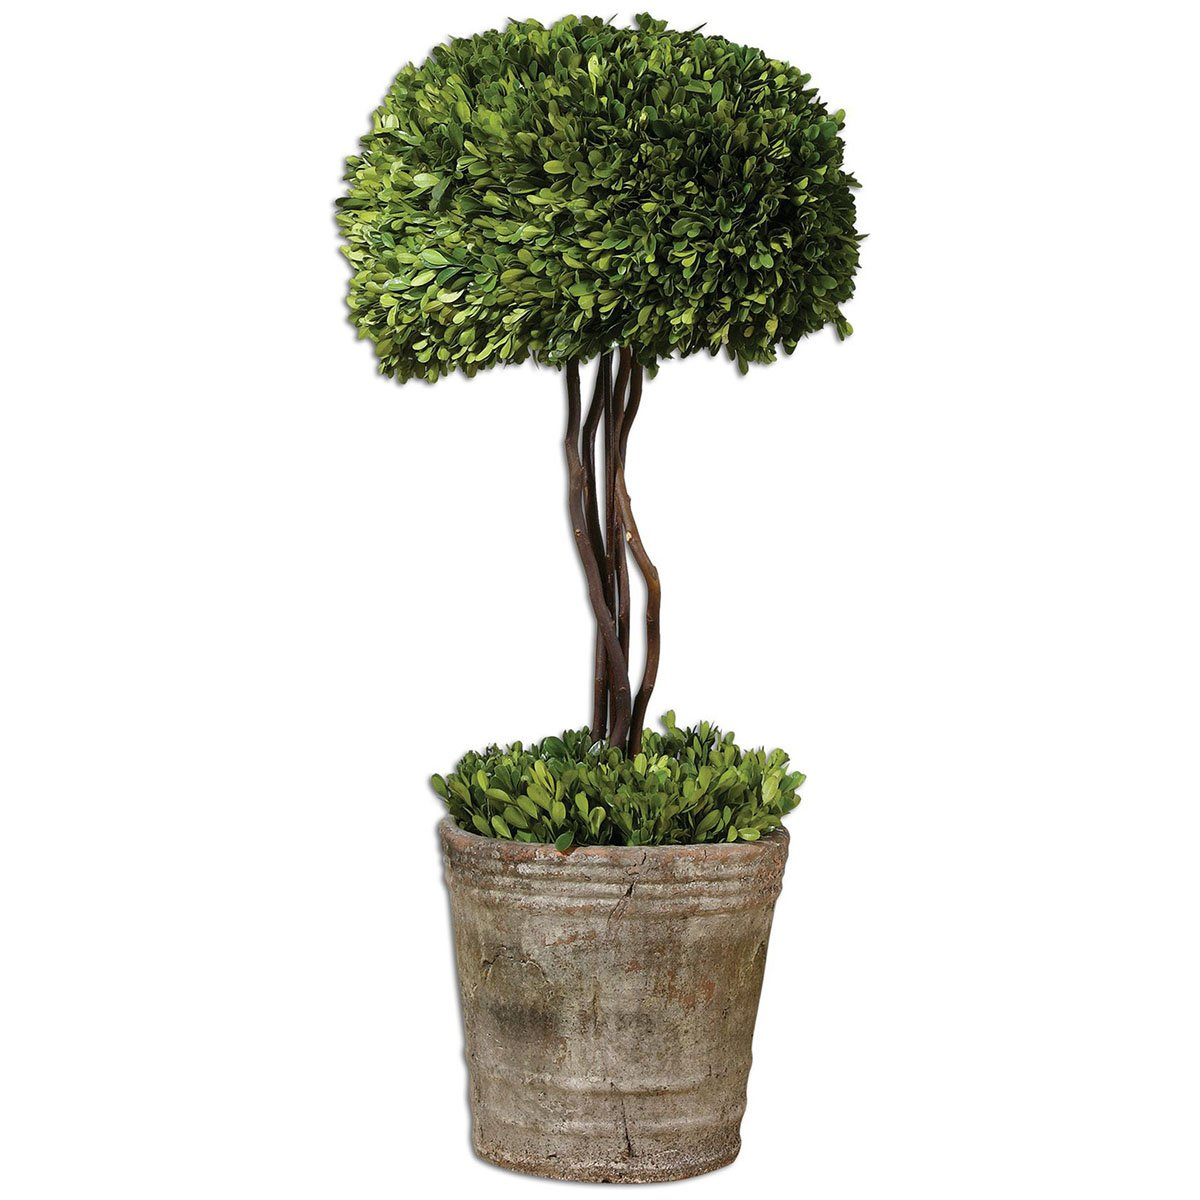 Uttermost Preserved Boxwood Tree Topiary 14 x 14 x 33''